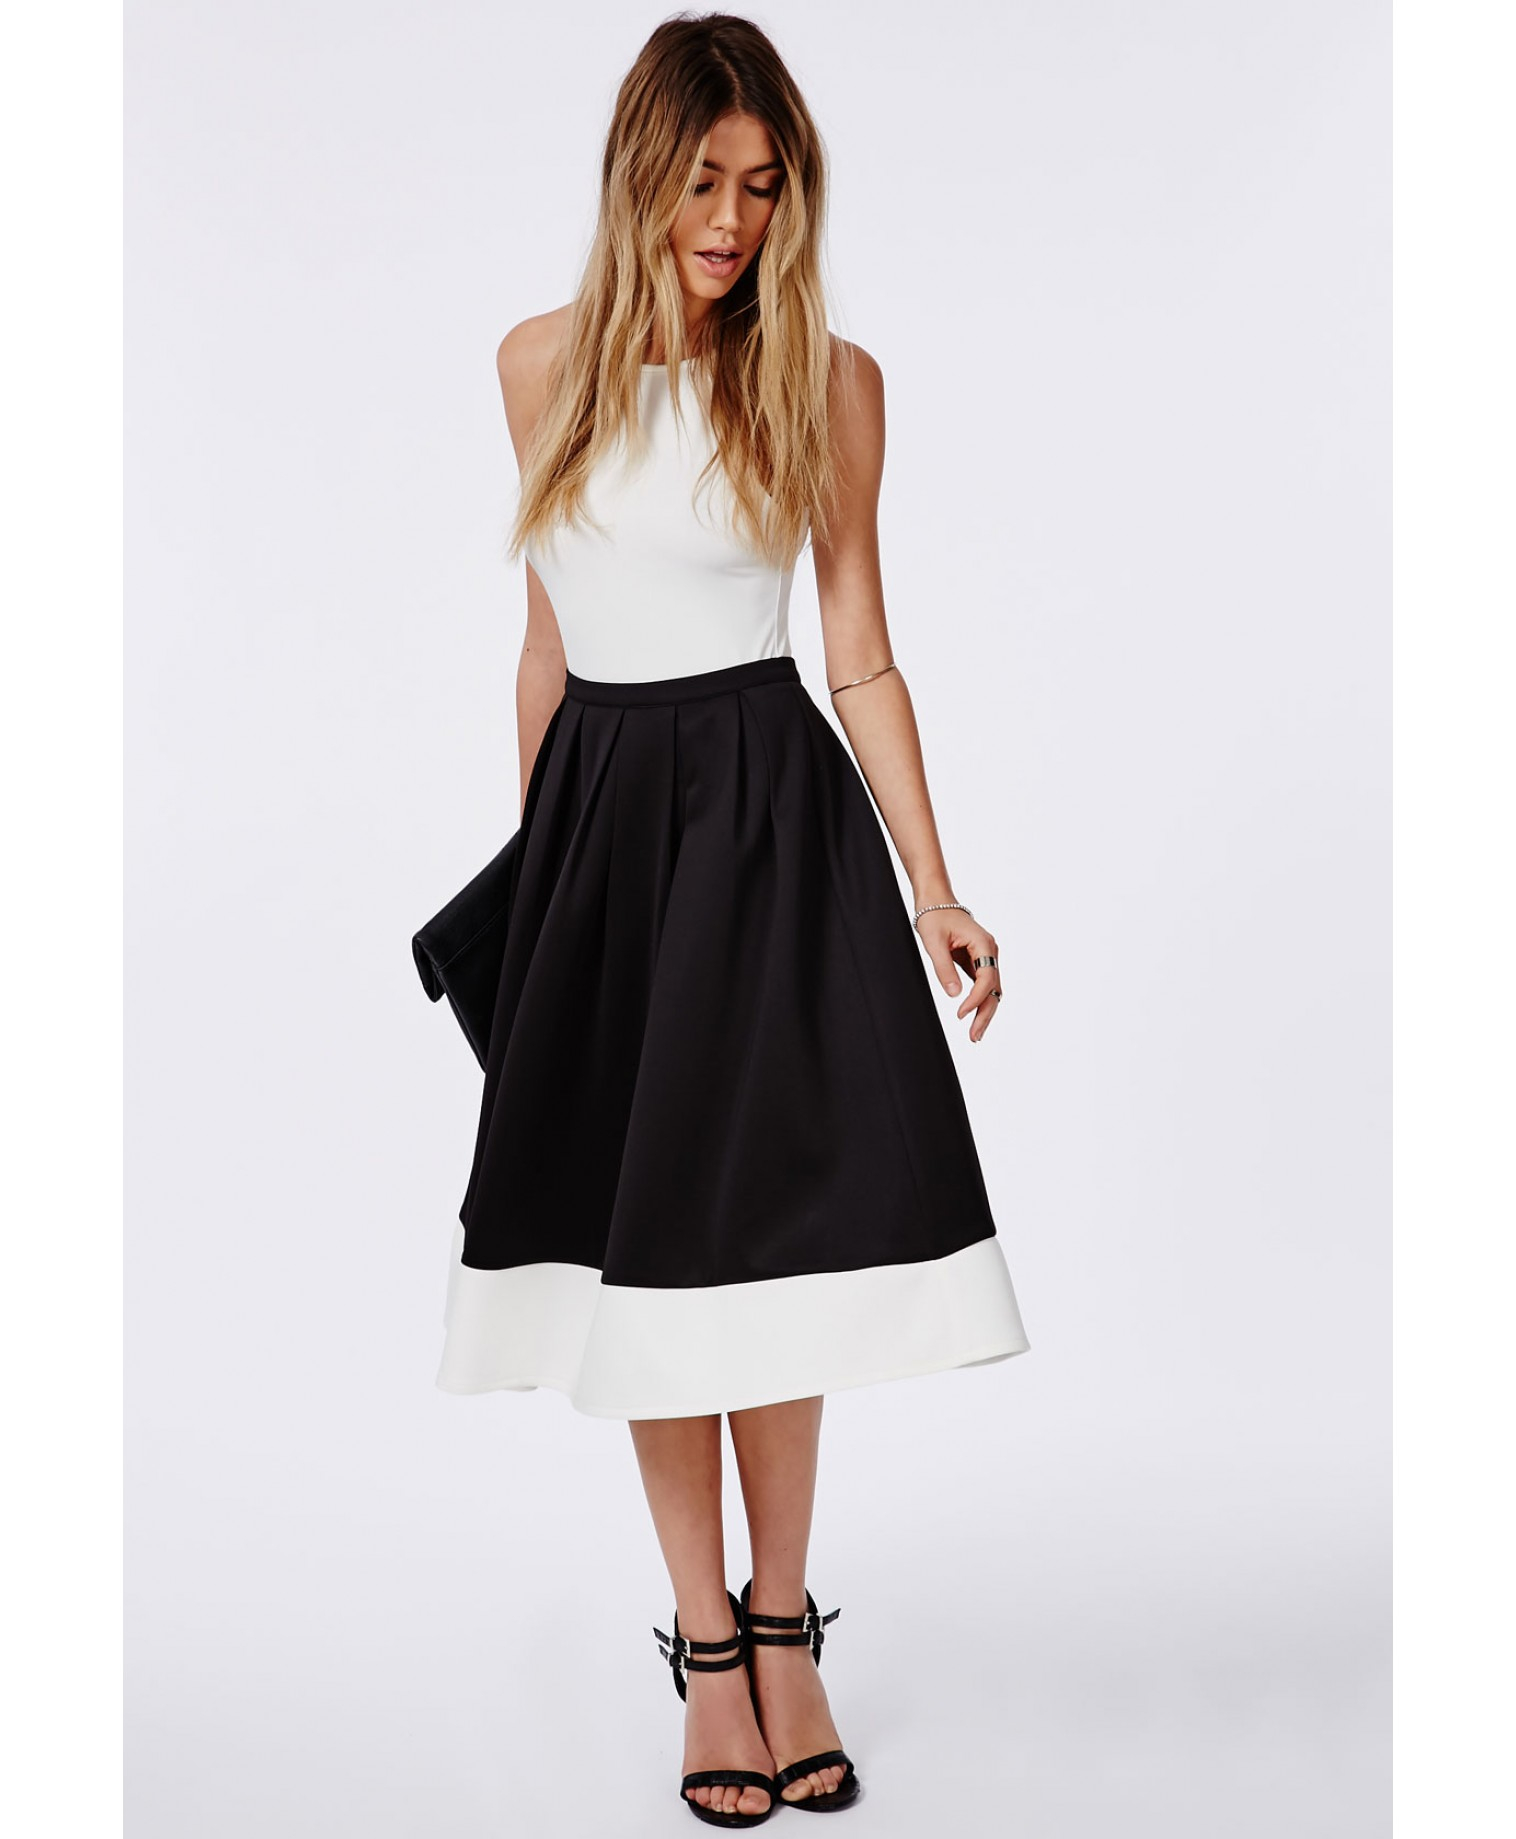 diverse styles durable in use super cheap compares to Women's Contrast Panel Hem Scuba Midi Skater Skirt Black